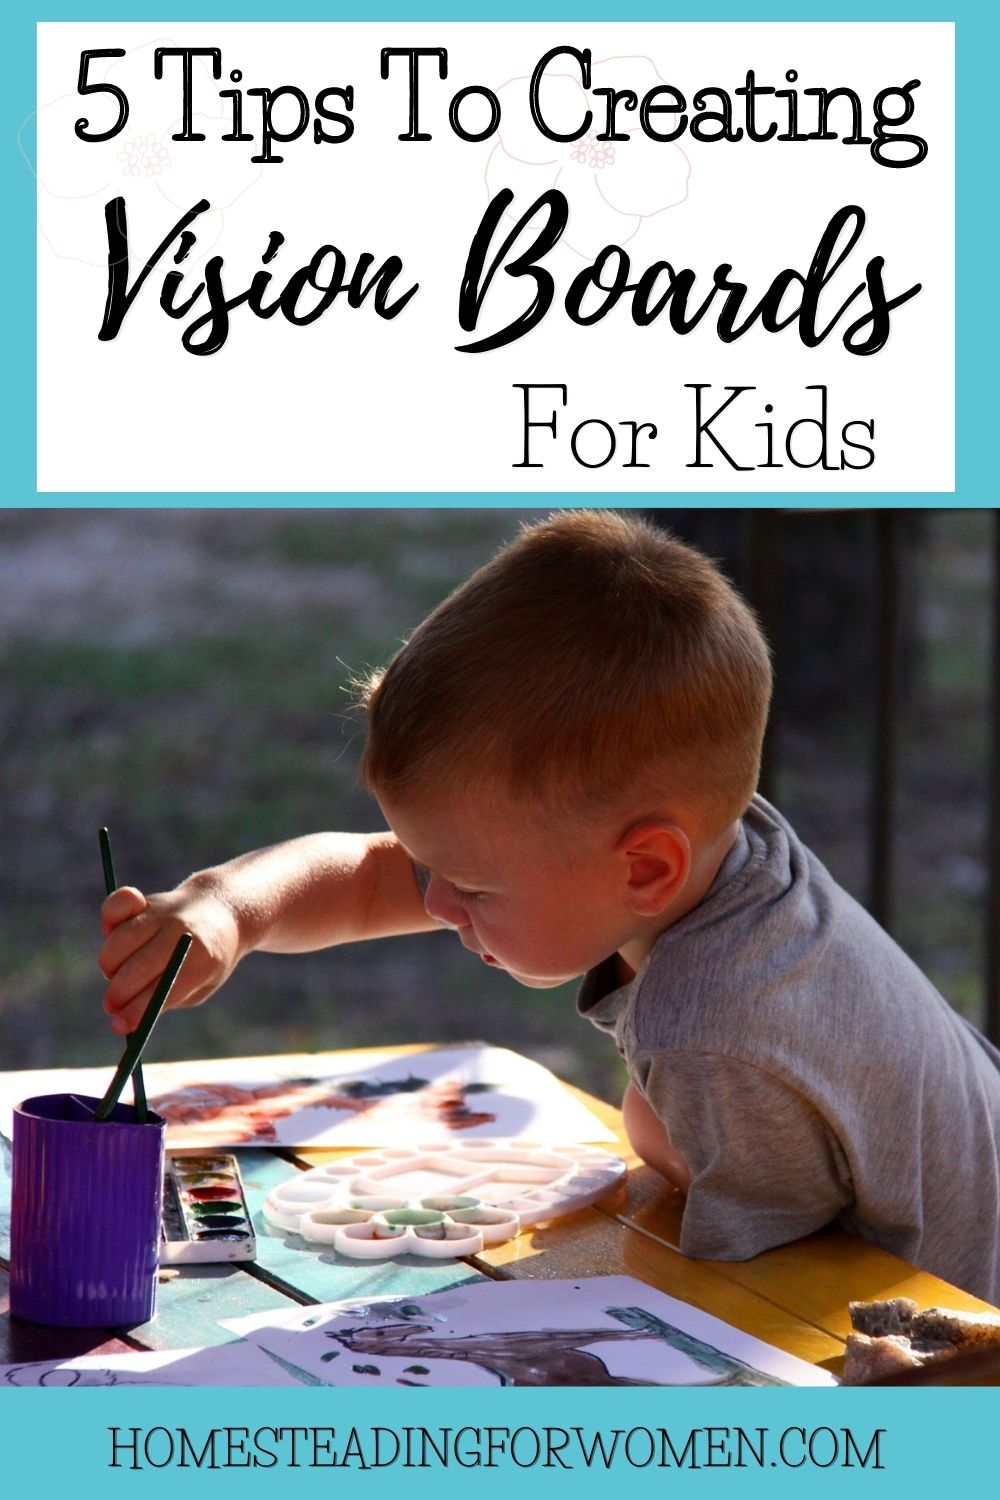 Vision Boards For Kids ~5 Tips on Creating them!